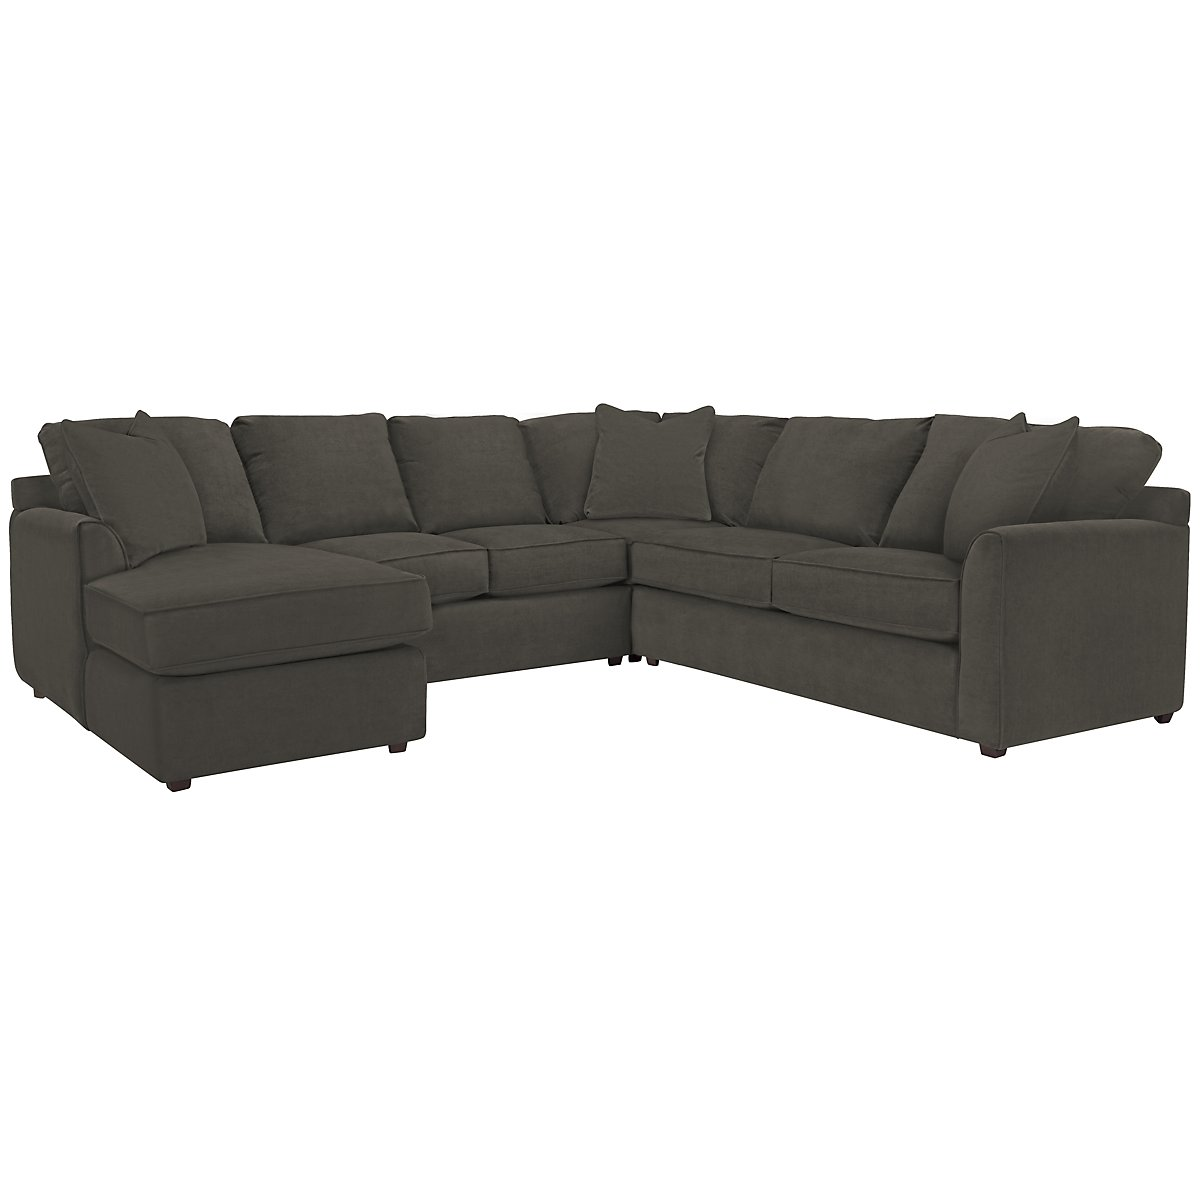 Express3 Dk Gray Microfiber Small Left Chaise Sectional